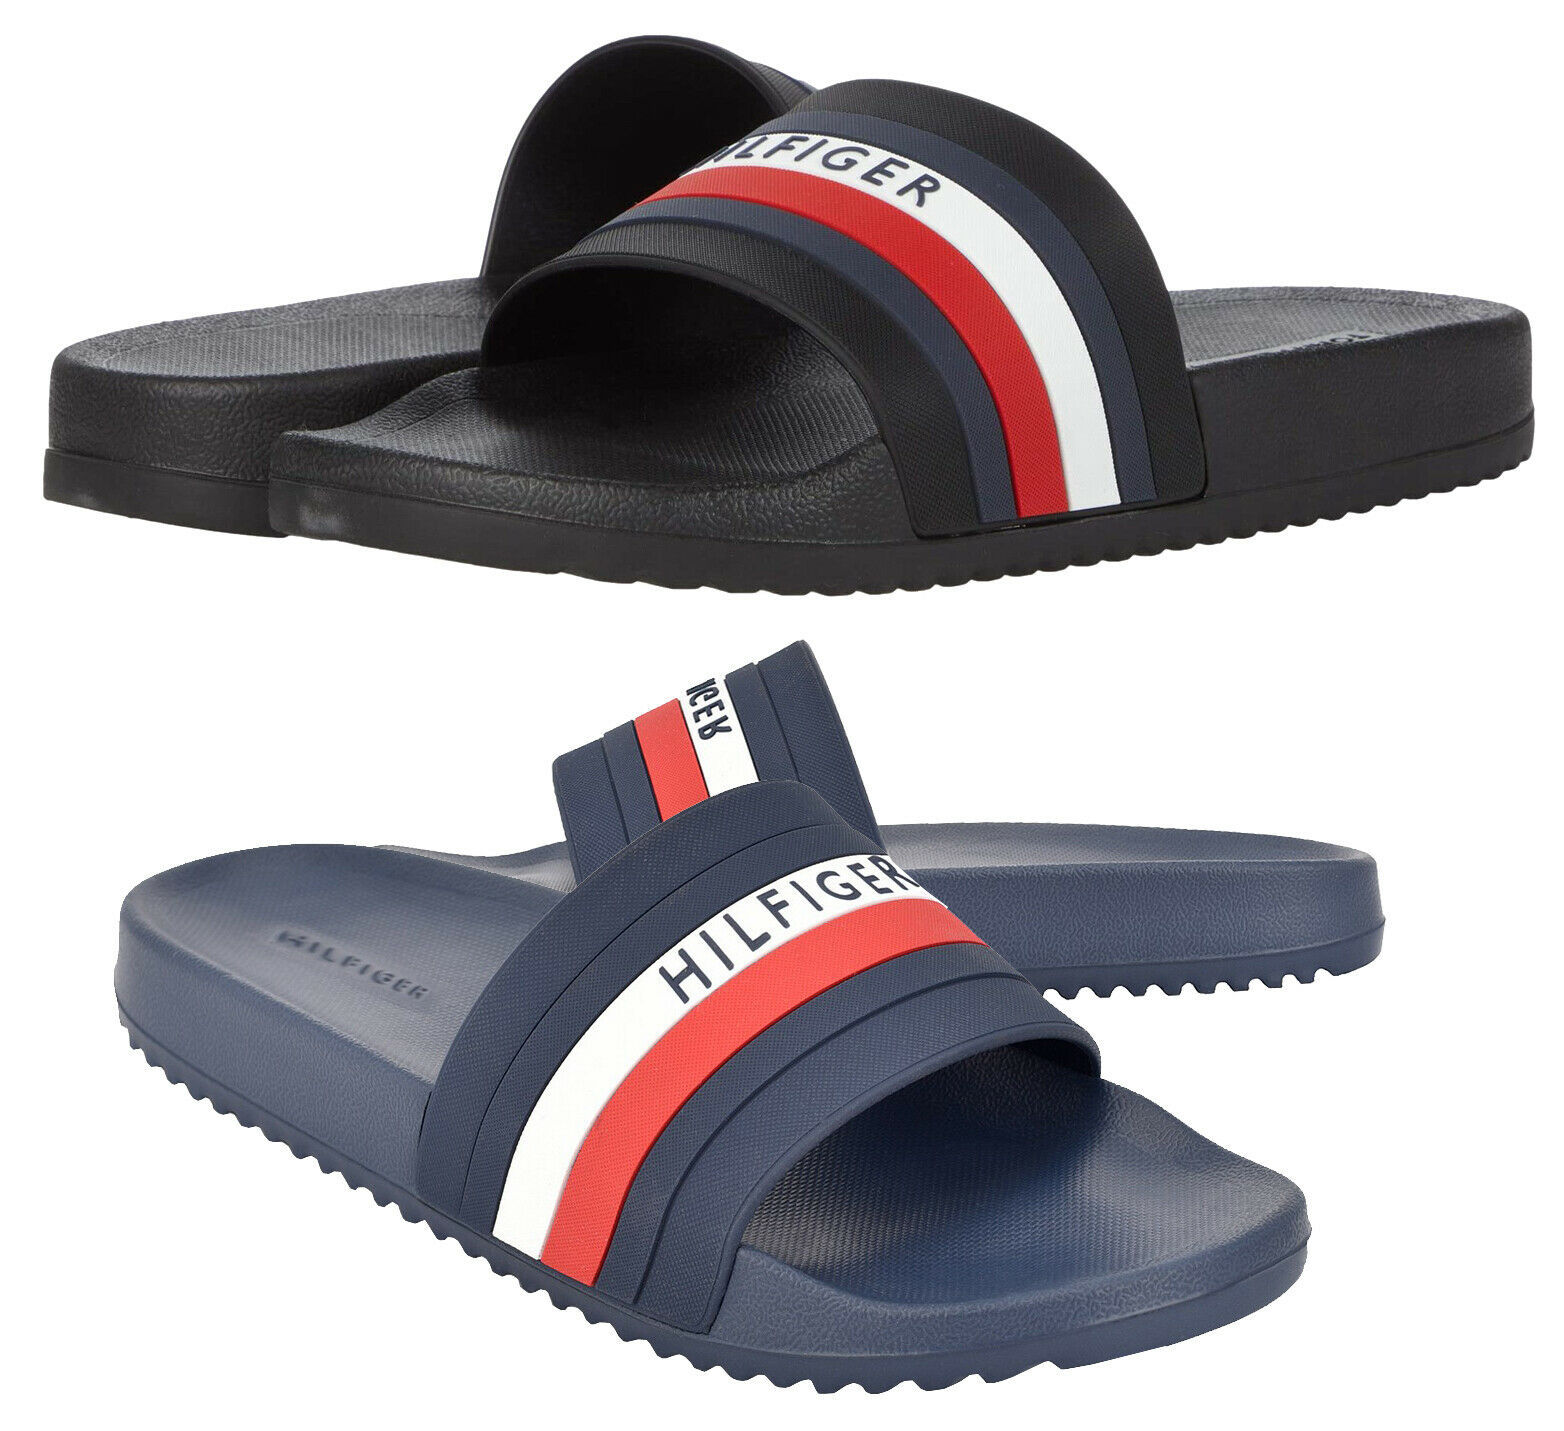 Men's Tommy Hilfiger Casual Designer Striped Slippers Riker Slide Sandals